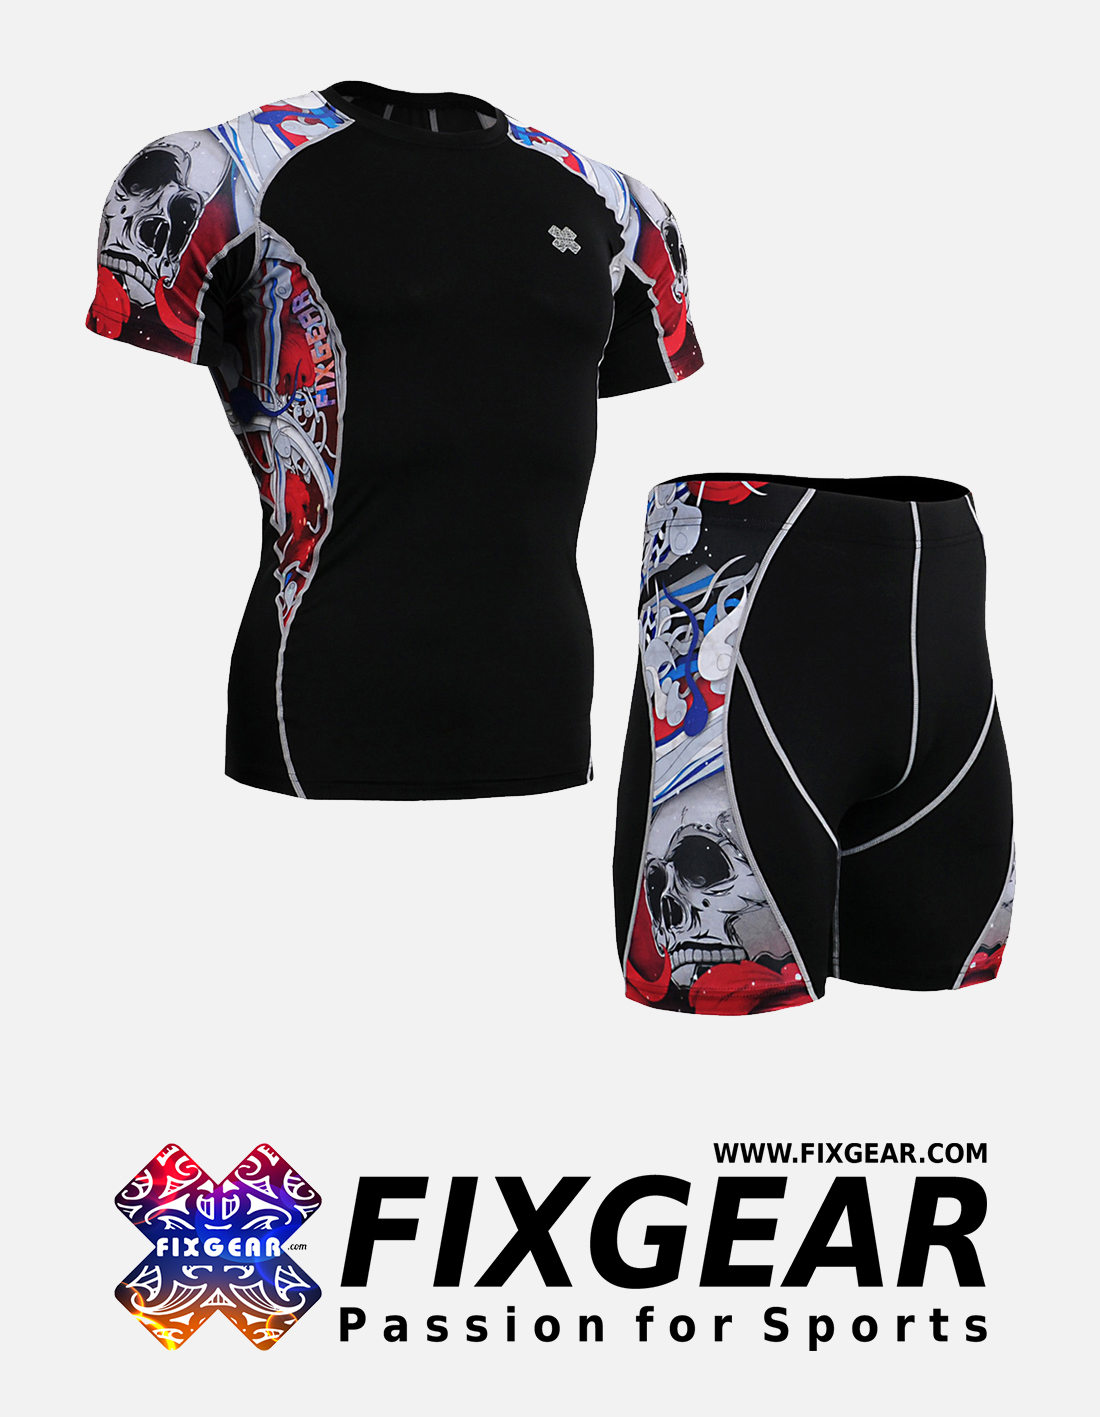 FIXGEAR C2S-P2S-B19R Set Compression Base Layer Shirt & Compression Drawer Shorts